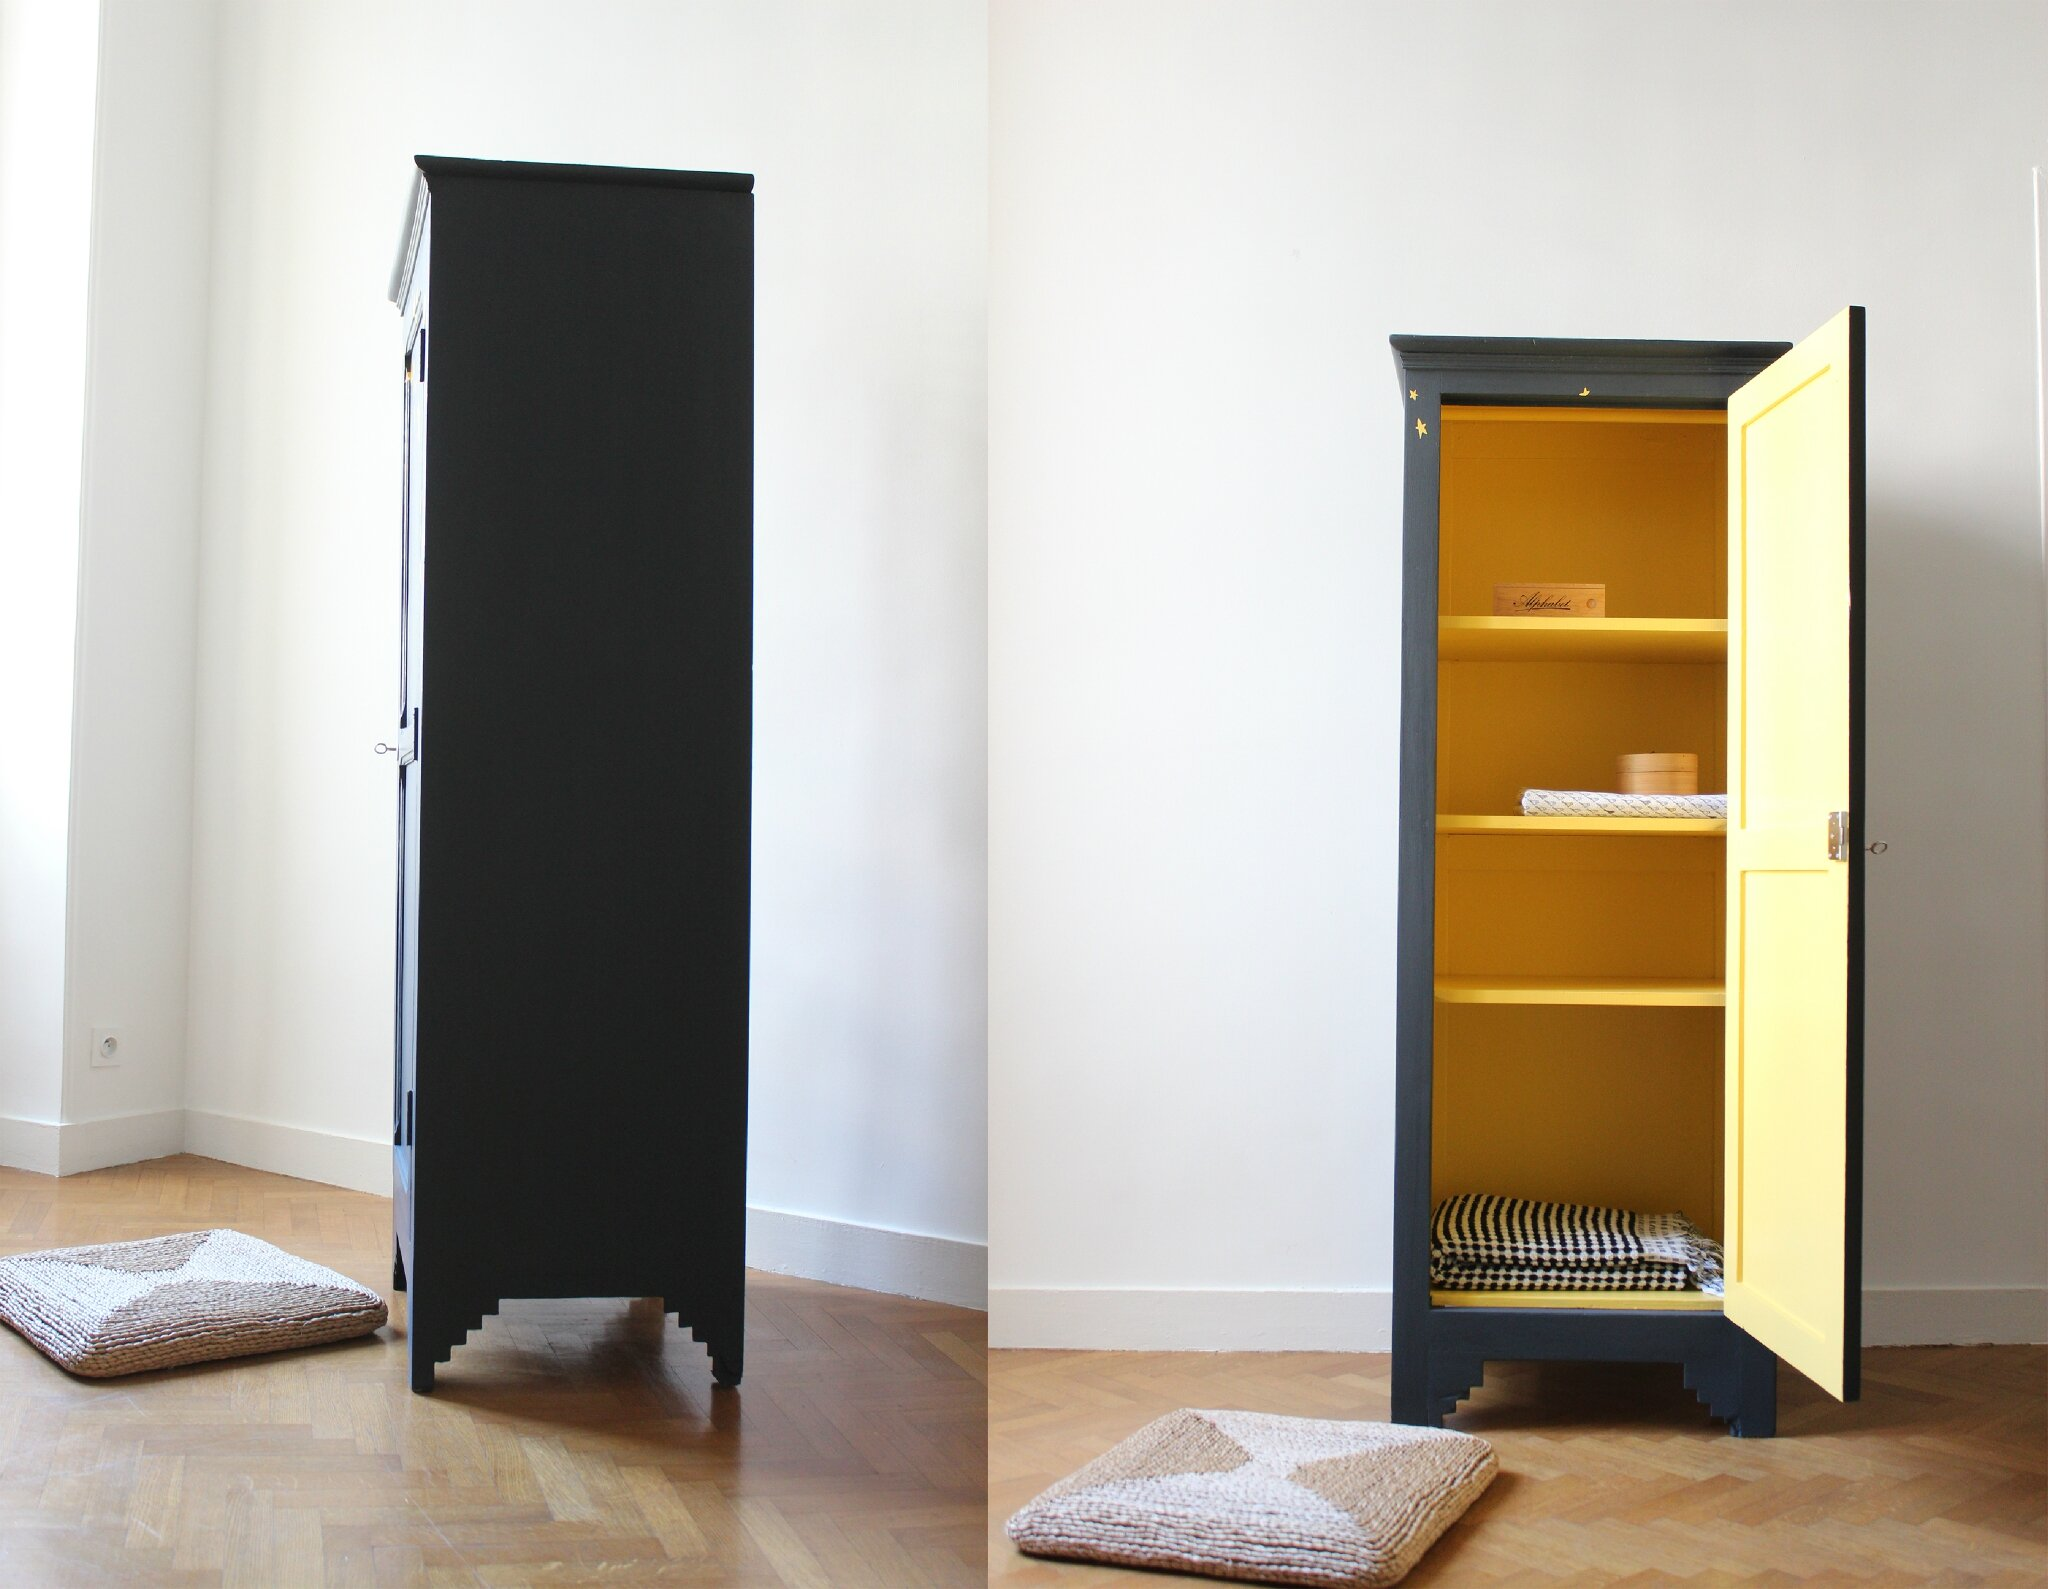 armoire penderie vintage armoire penderie rotin vintage with armoire penderie vintage cool. Black Bedroom Furniture Sets. Home Design Ideas